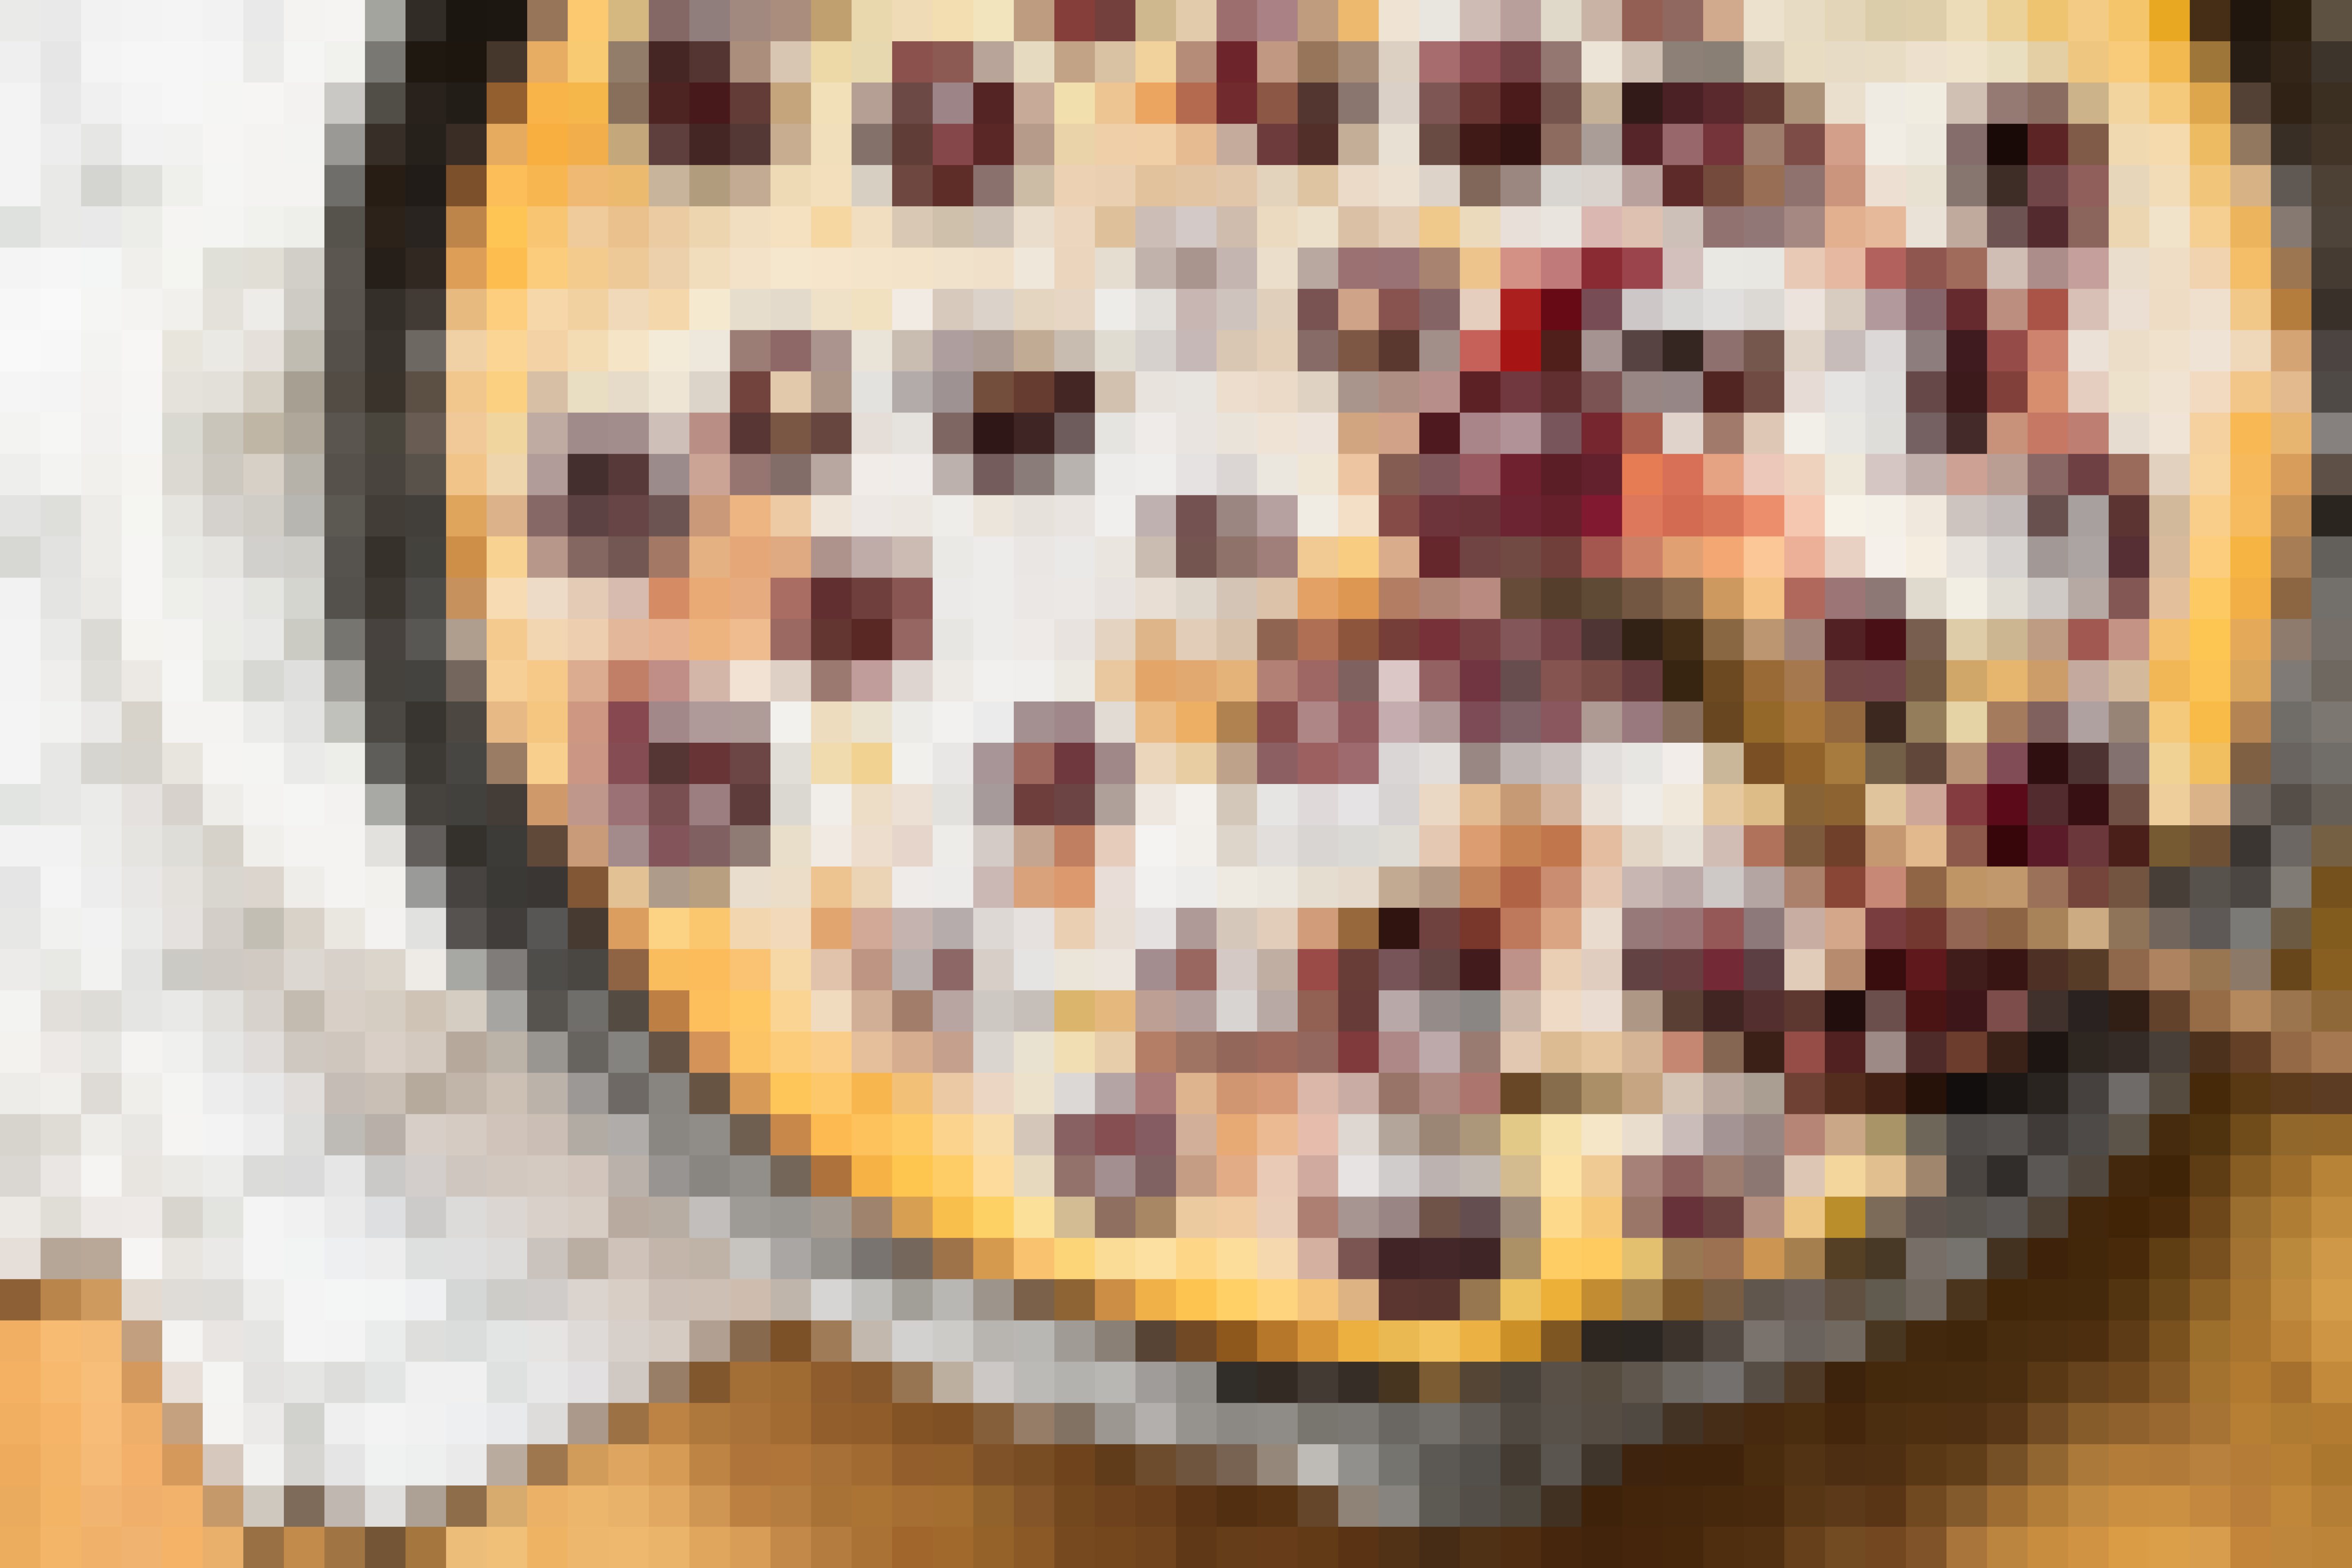 How To Make Fruit Clafoutis: gallery image 7